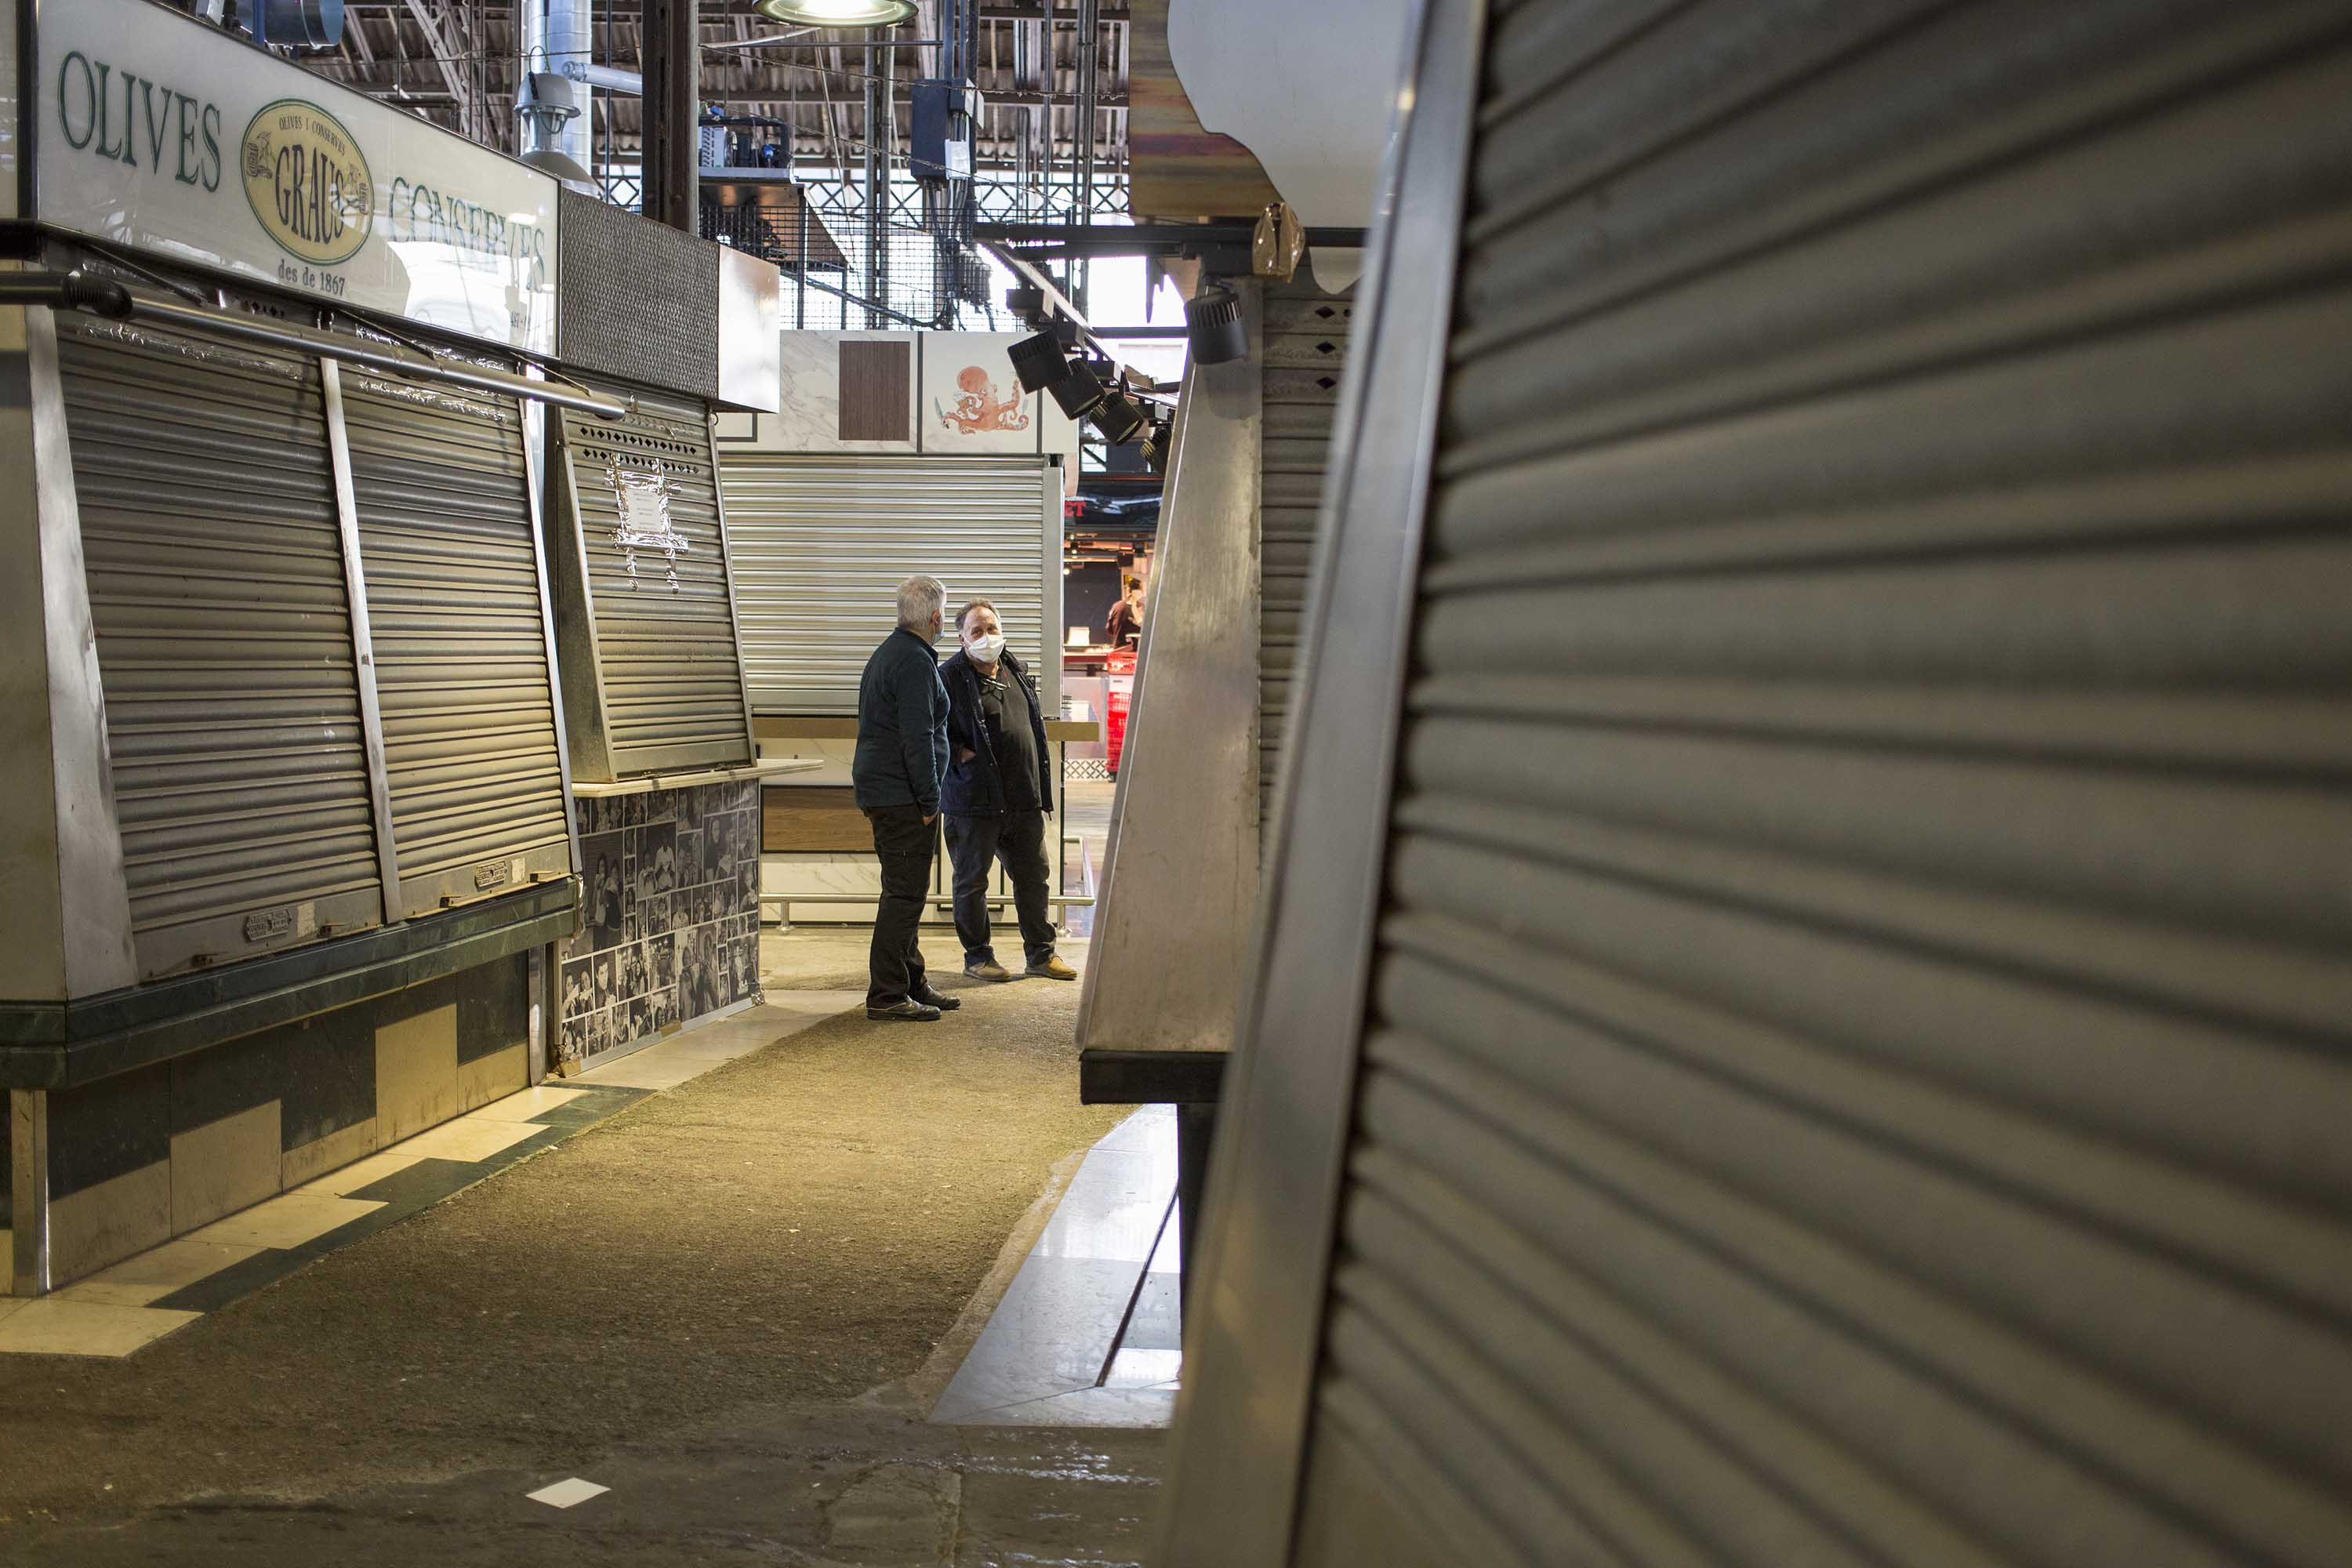 Workers are seen amid closed stalls at a market in Barcelona, Spain, on April 23.